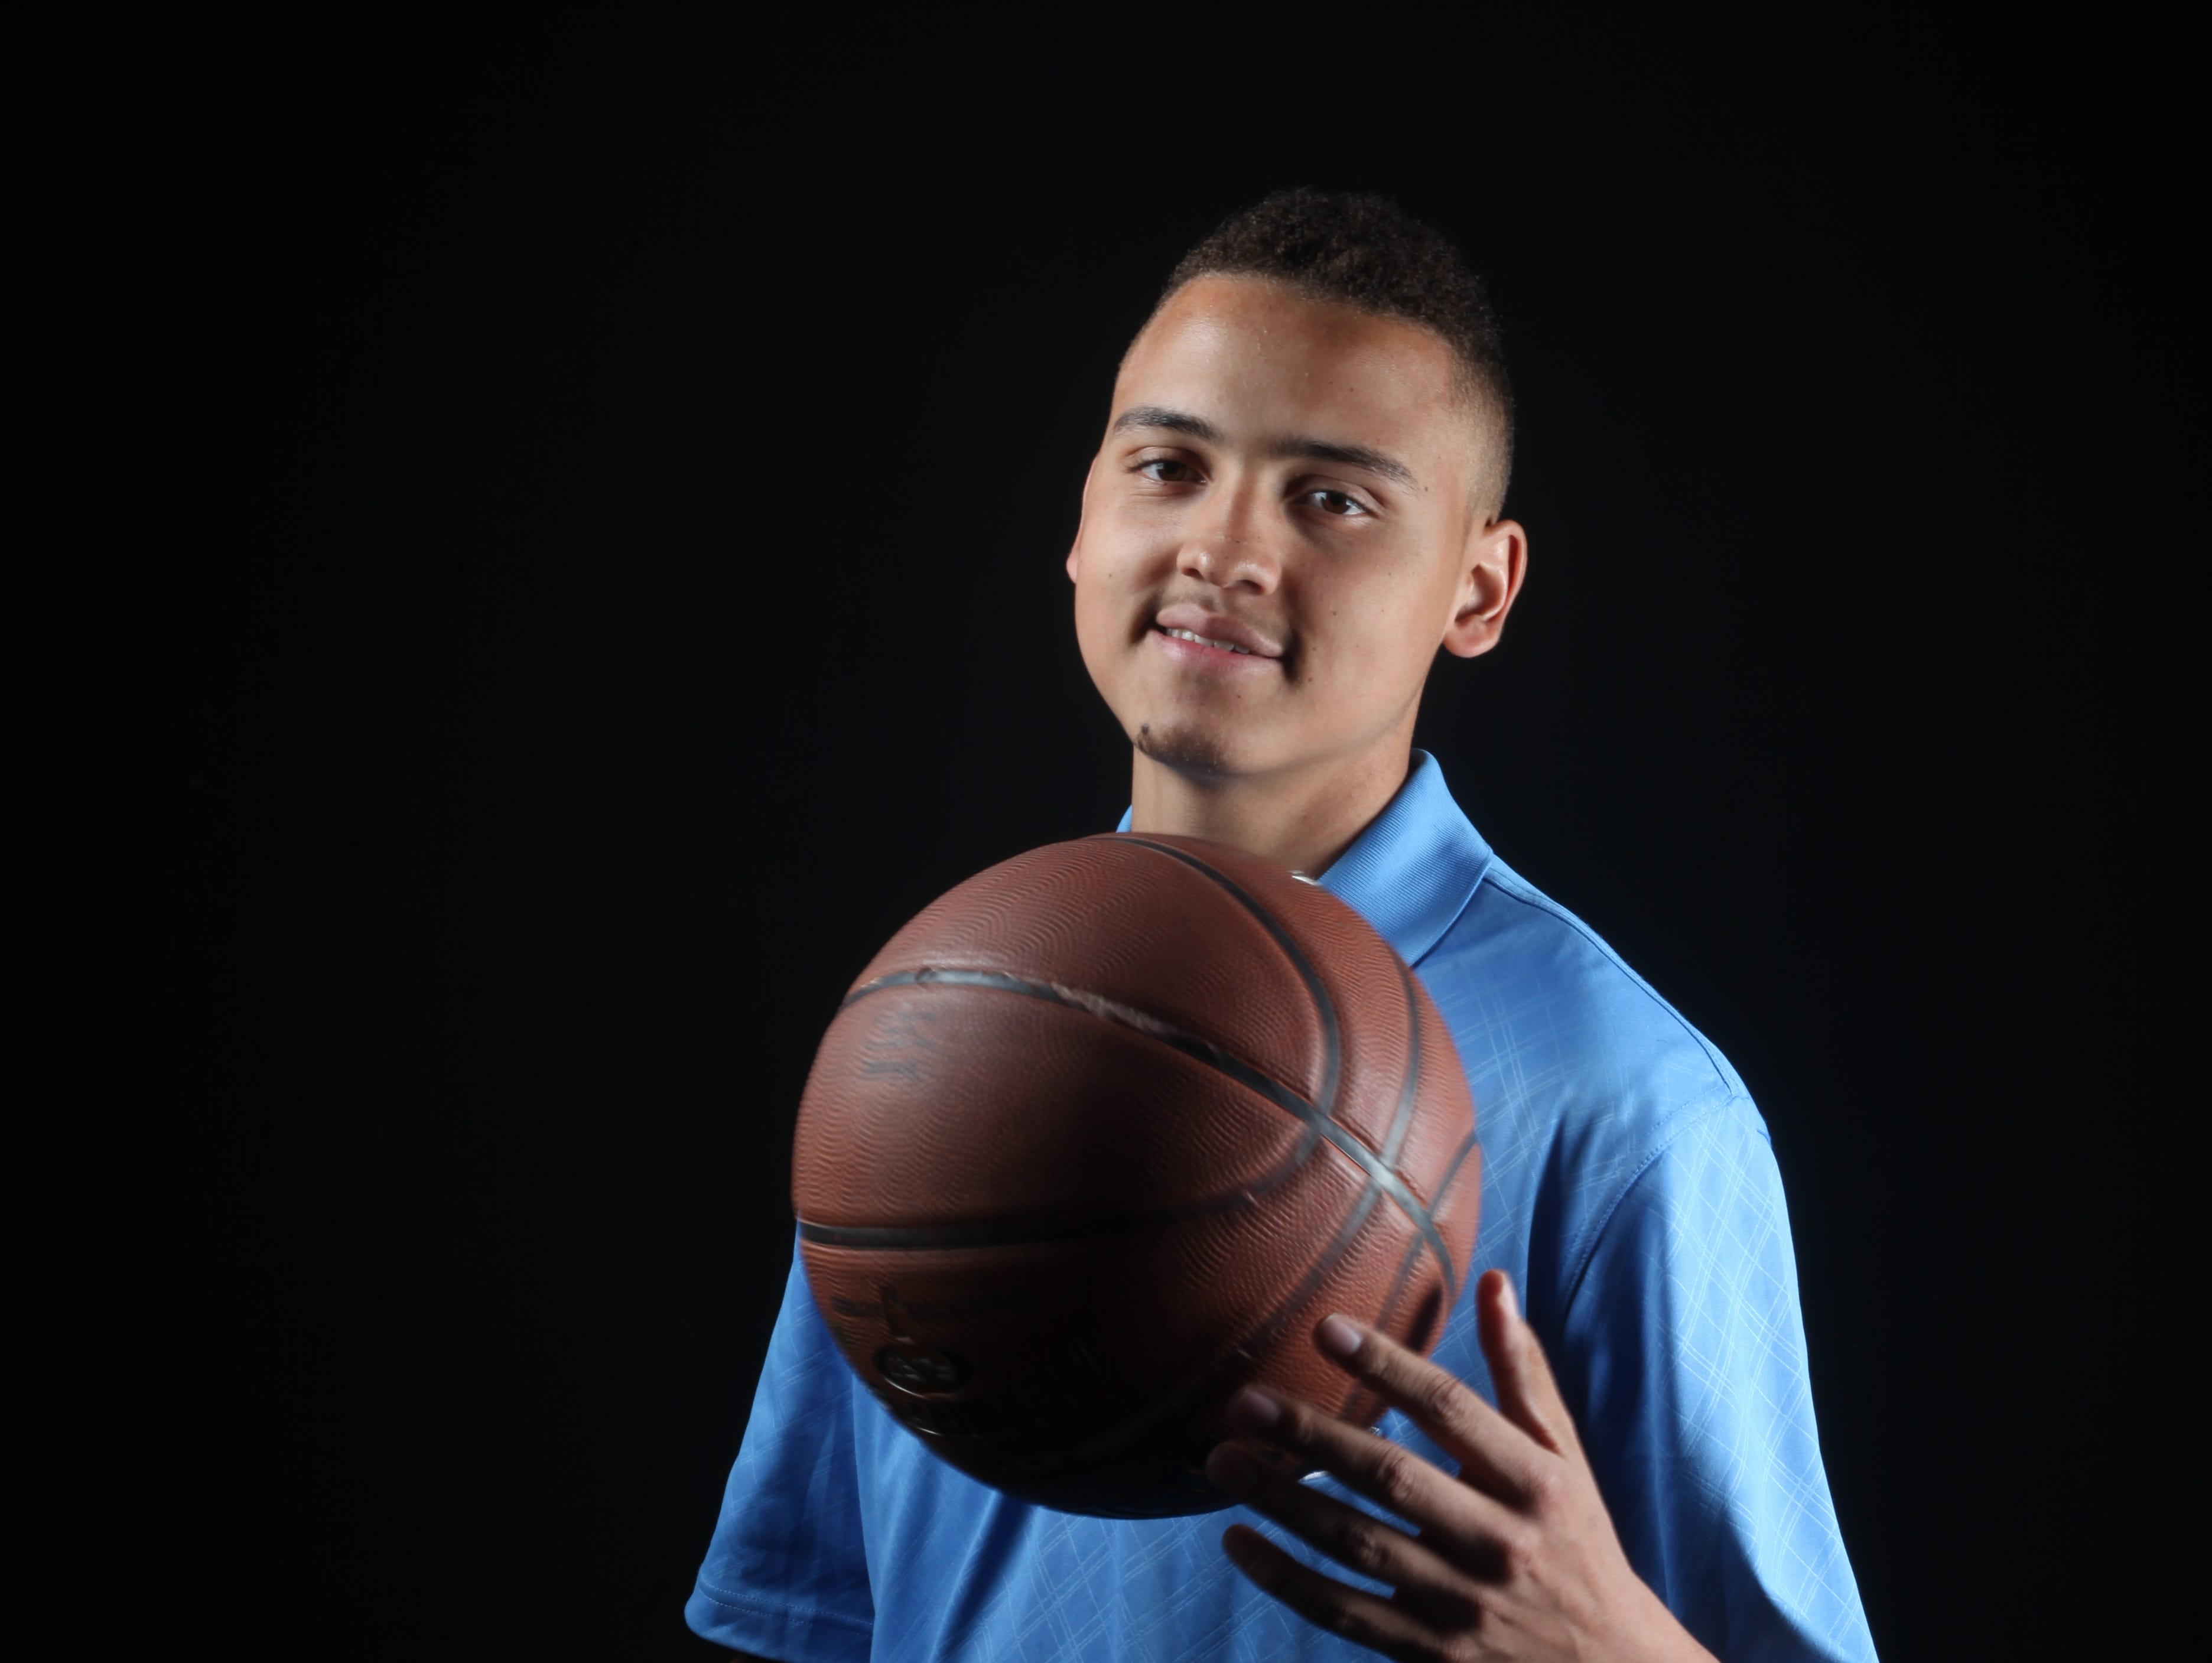 Charles Neal, Rancho Mirage High School basketball player photographed at the Desert Sun on April 1, 2016.